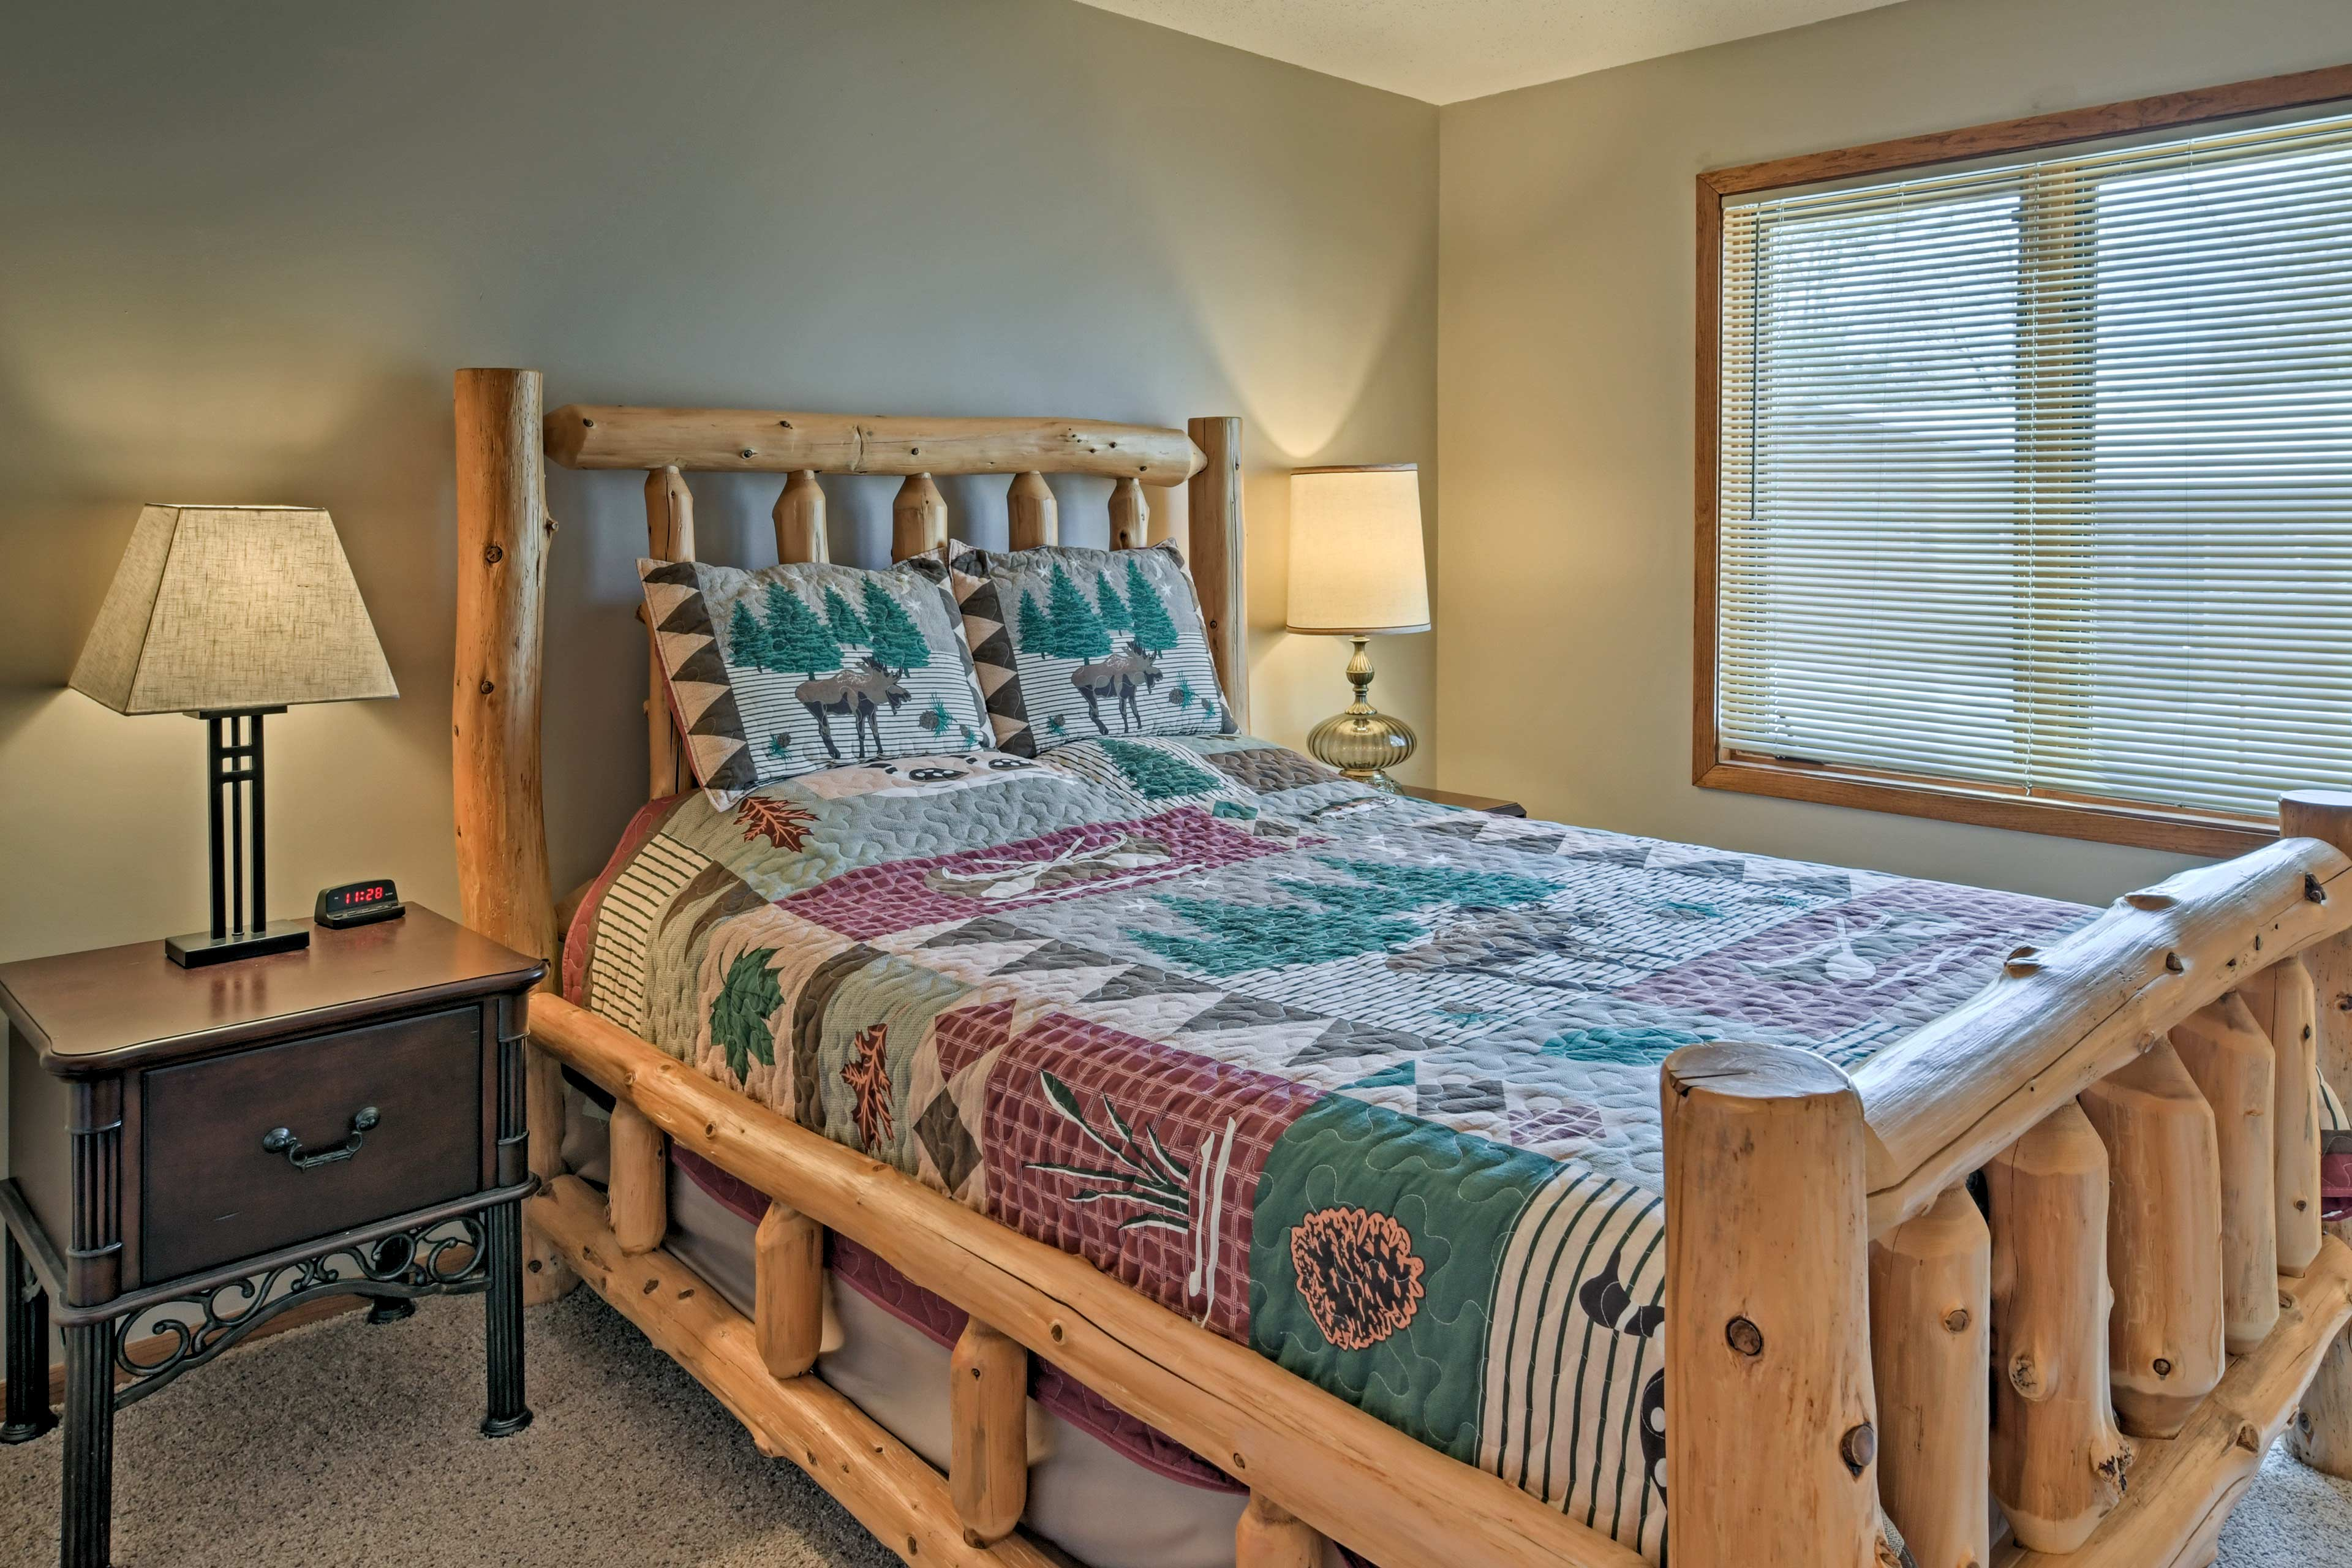 Sleep is sure to come easy on this lovely queen bed.